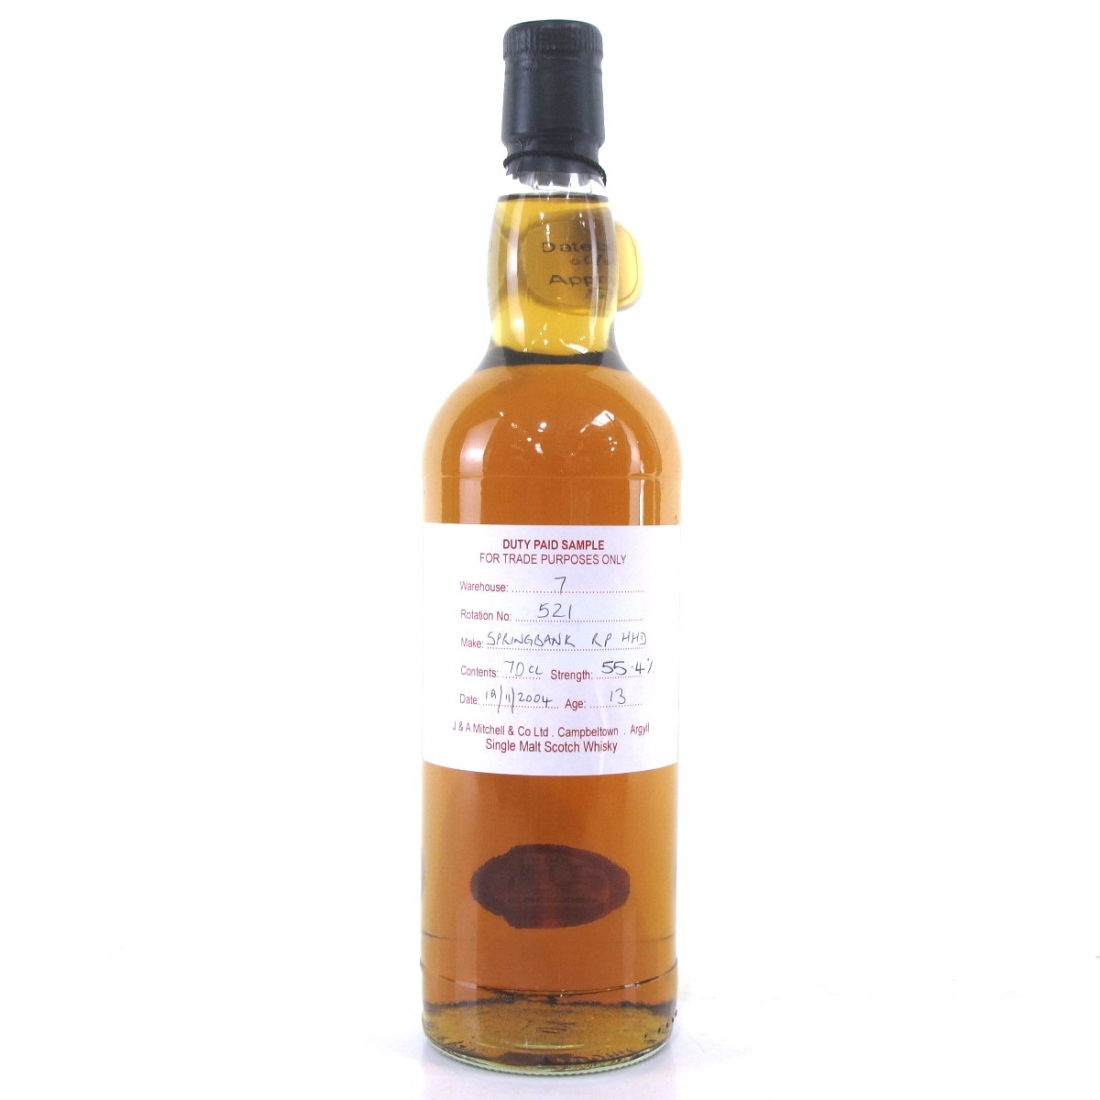 Springbank 2004 Duty Paid Sample 13 Year Old / Refill Hogshead